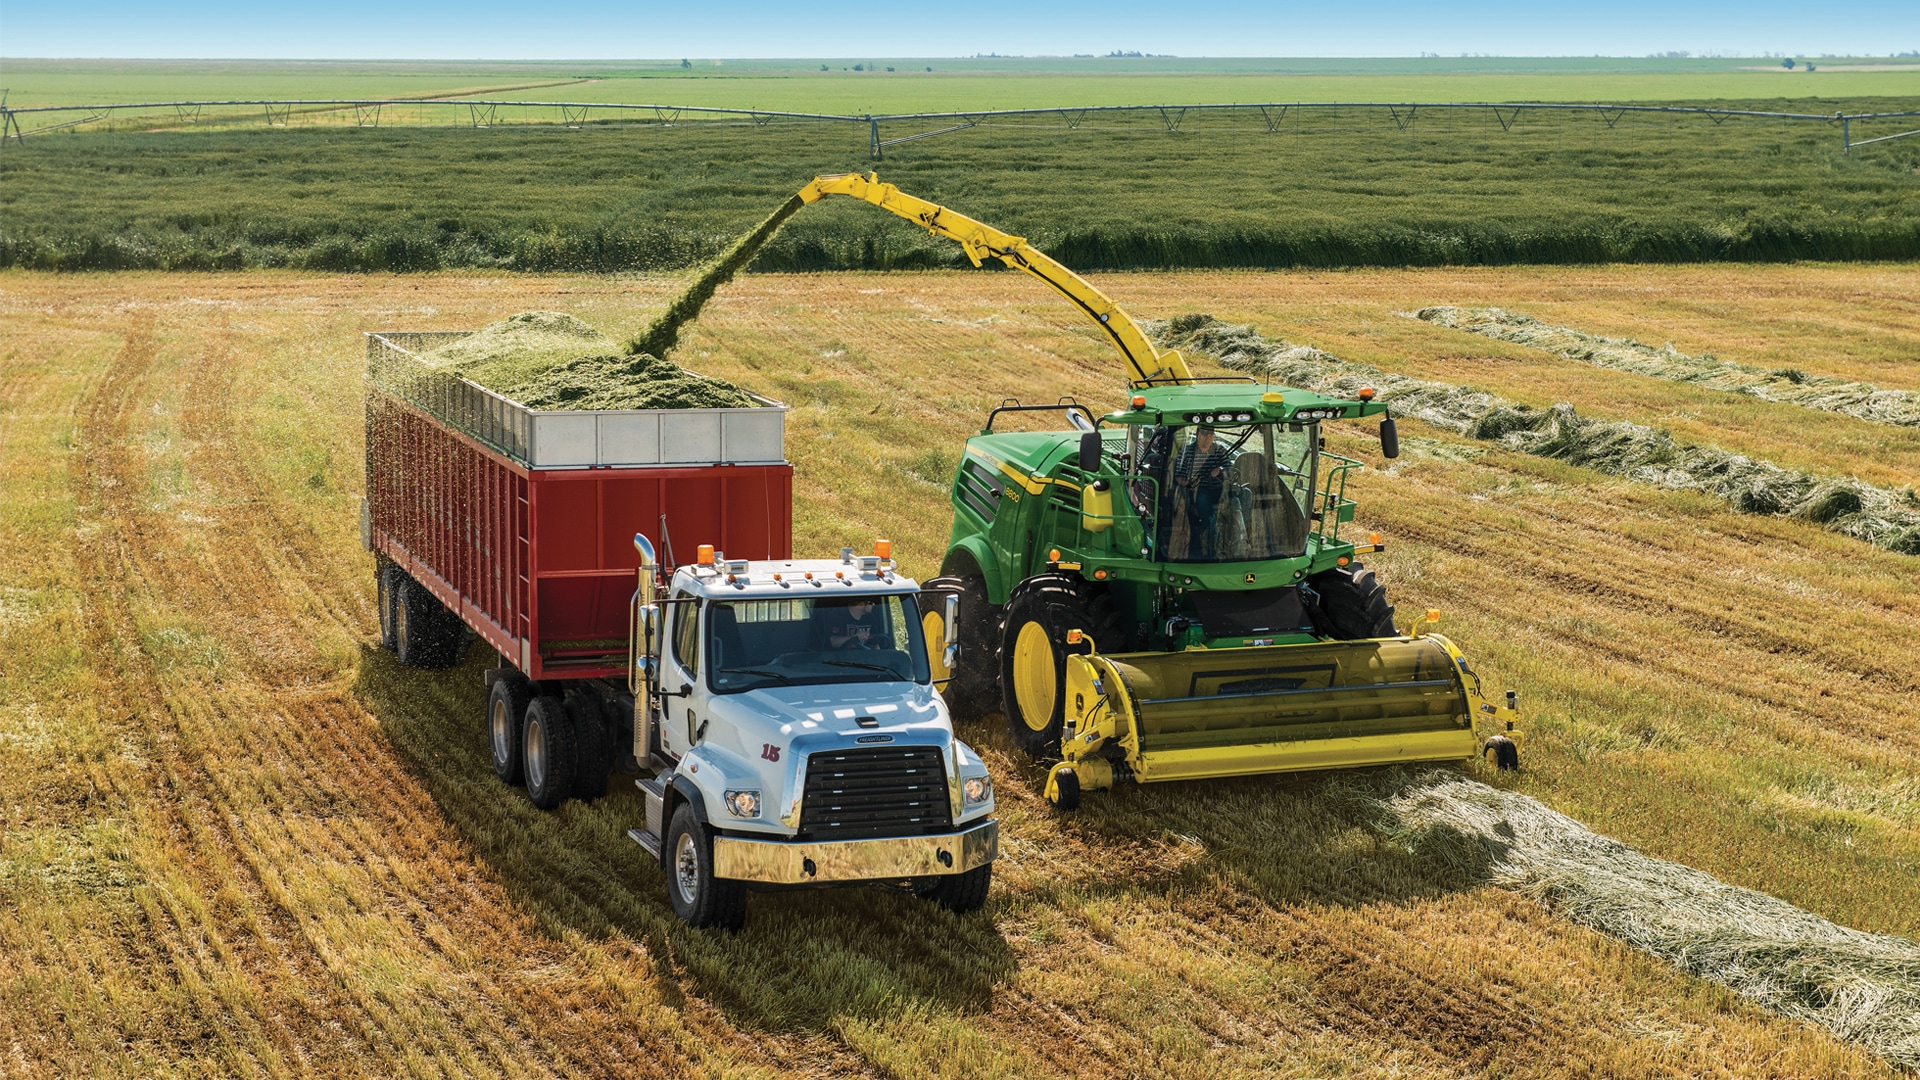 spfh moving product in a field